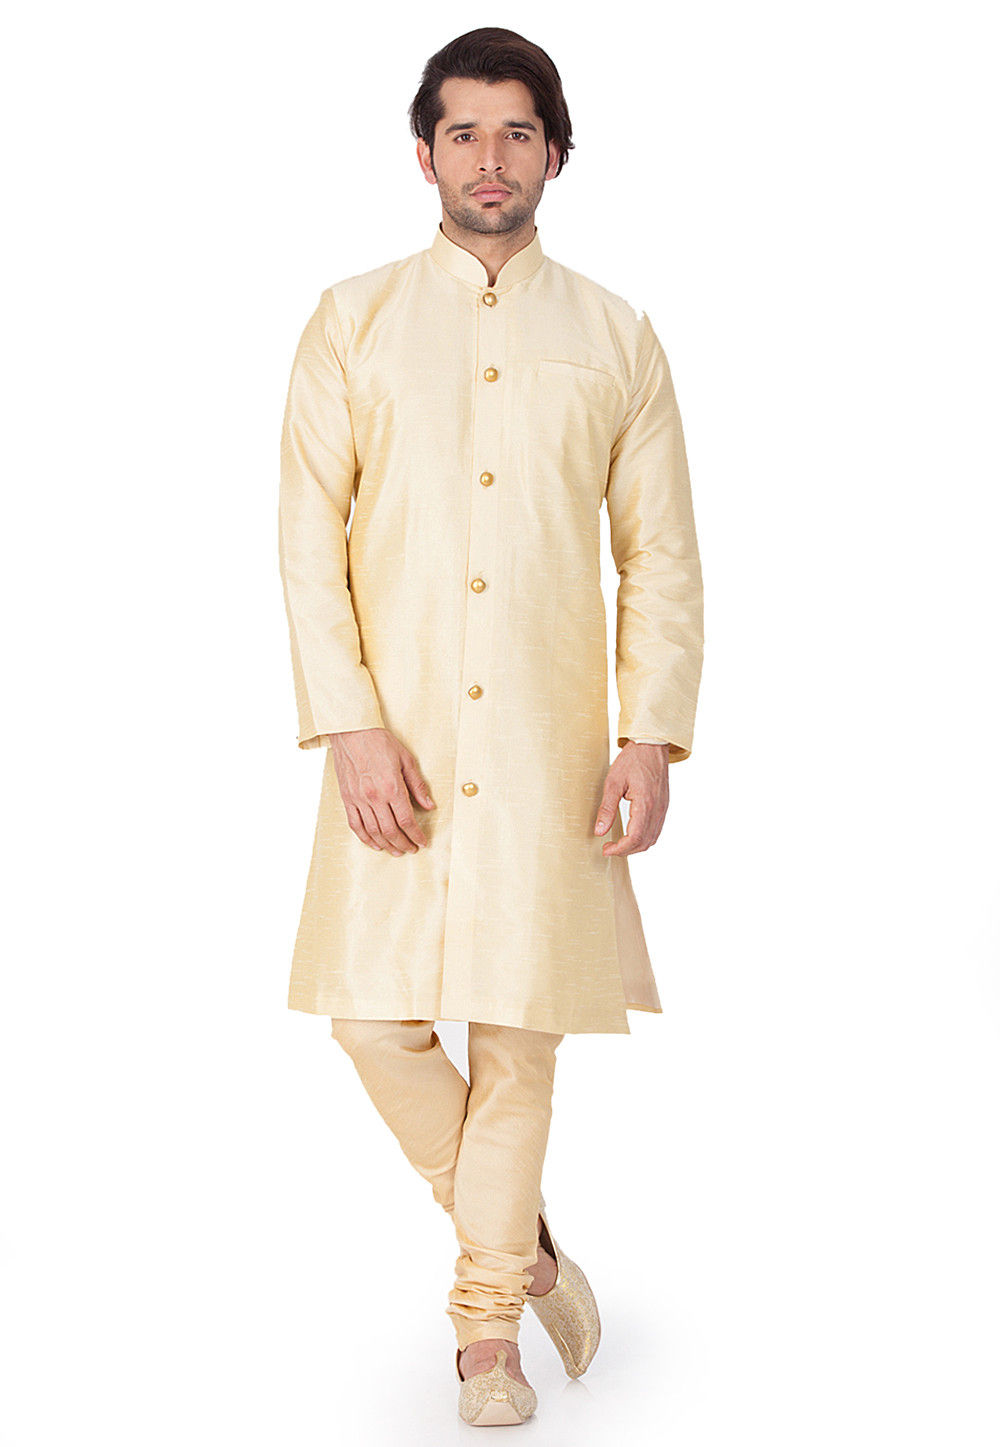 Solid Color Dupion Silk Kurta Set in Light Beige